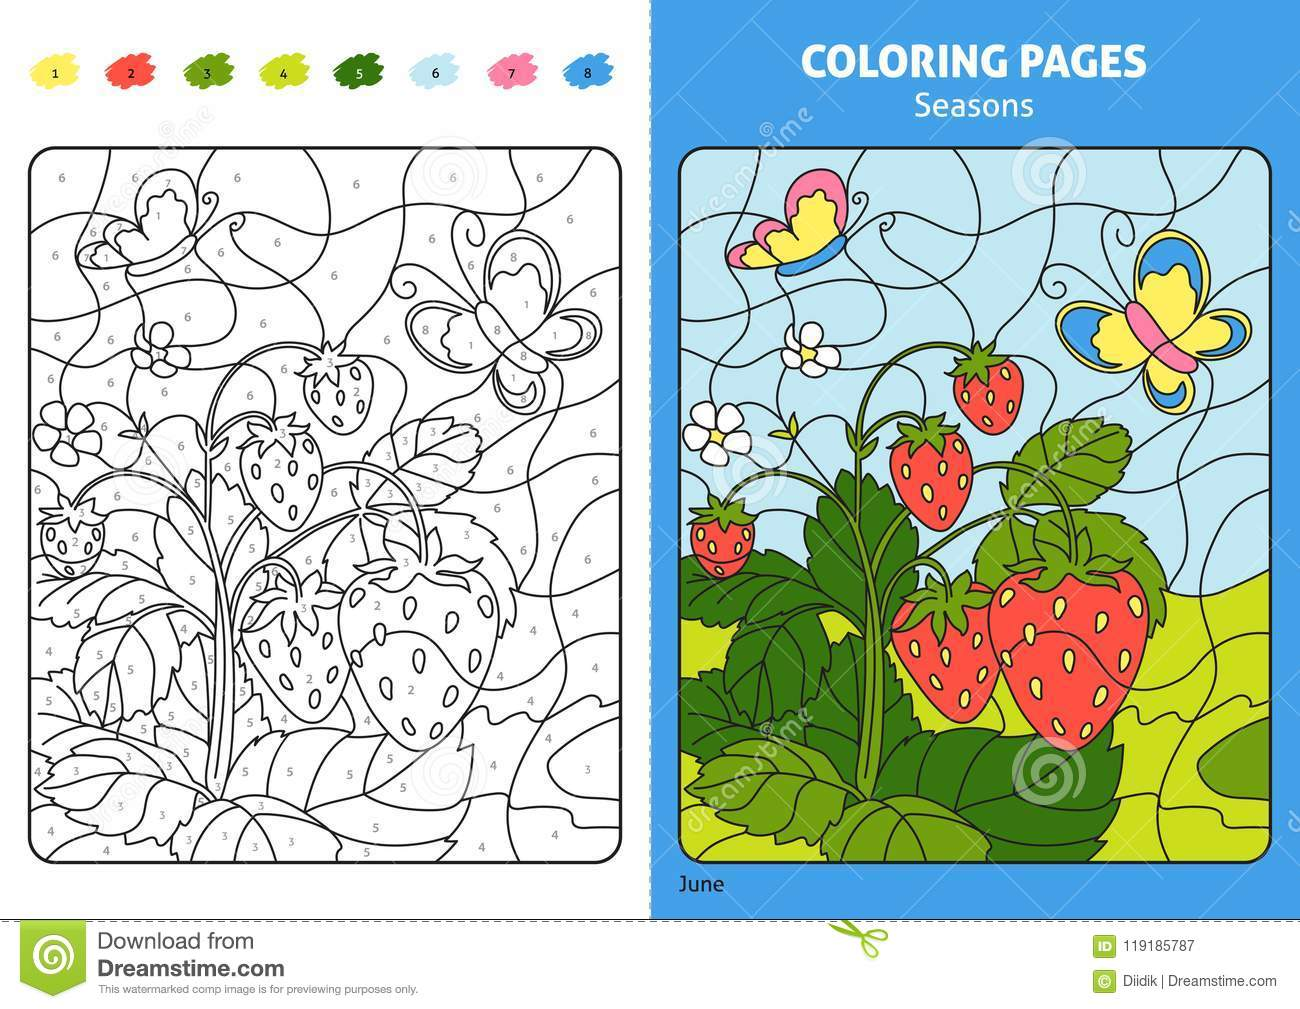 Seasons Coloring Page For Kids, June Month. Stock Vector ...